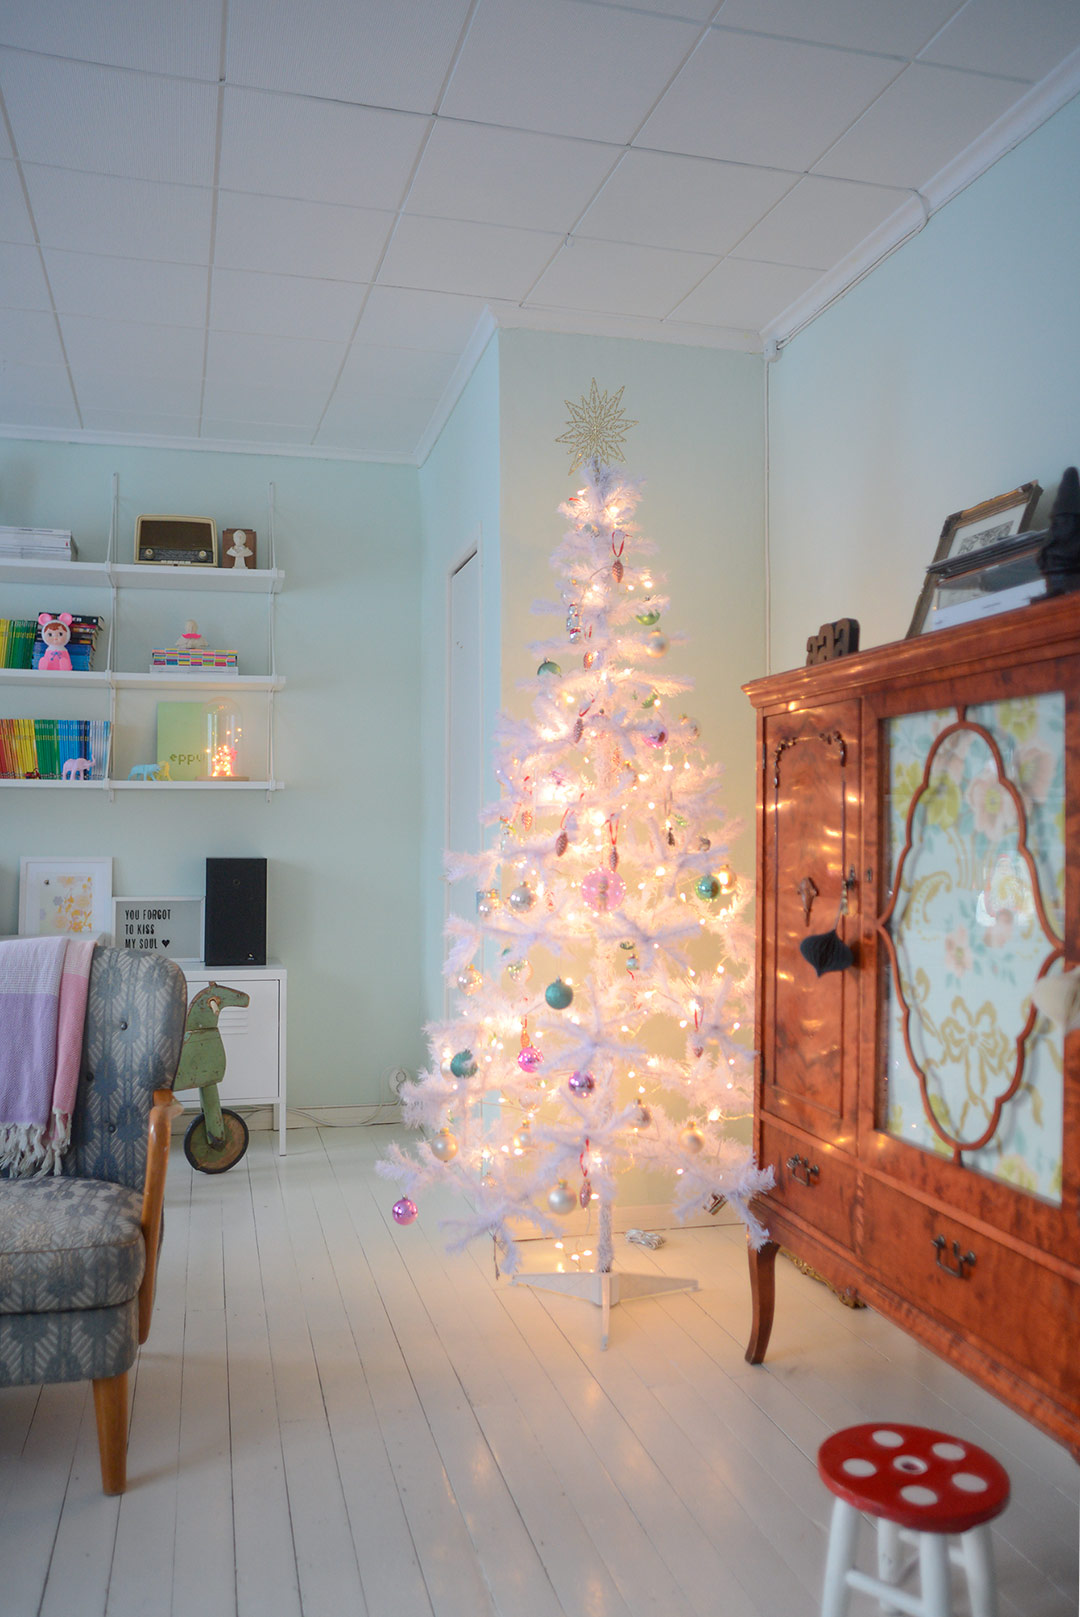 Pastel colored Christmas